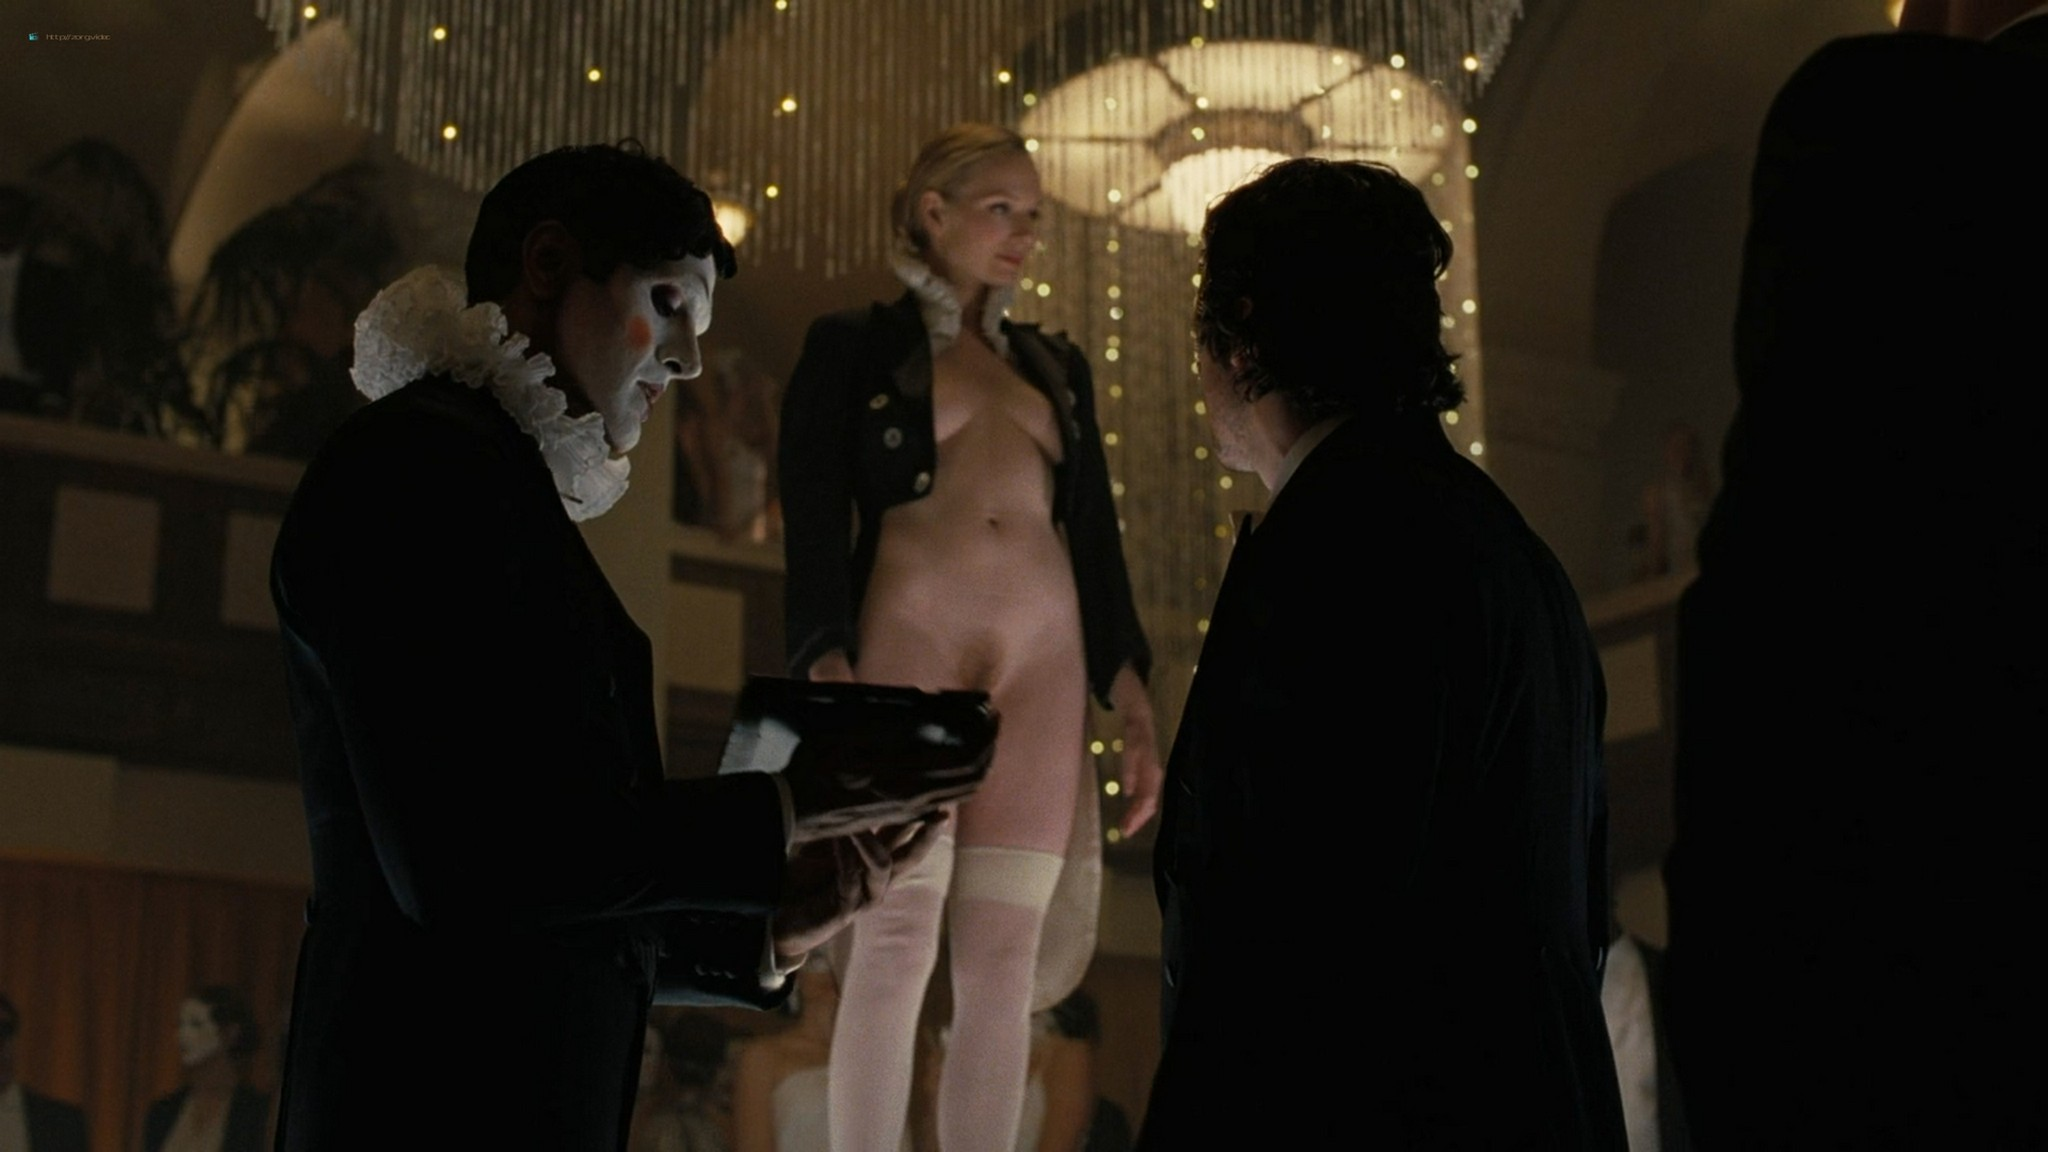 Katherine Murphy nude full frontal - Westworld (2020) s3e4 HD 1080p (3)